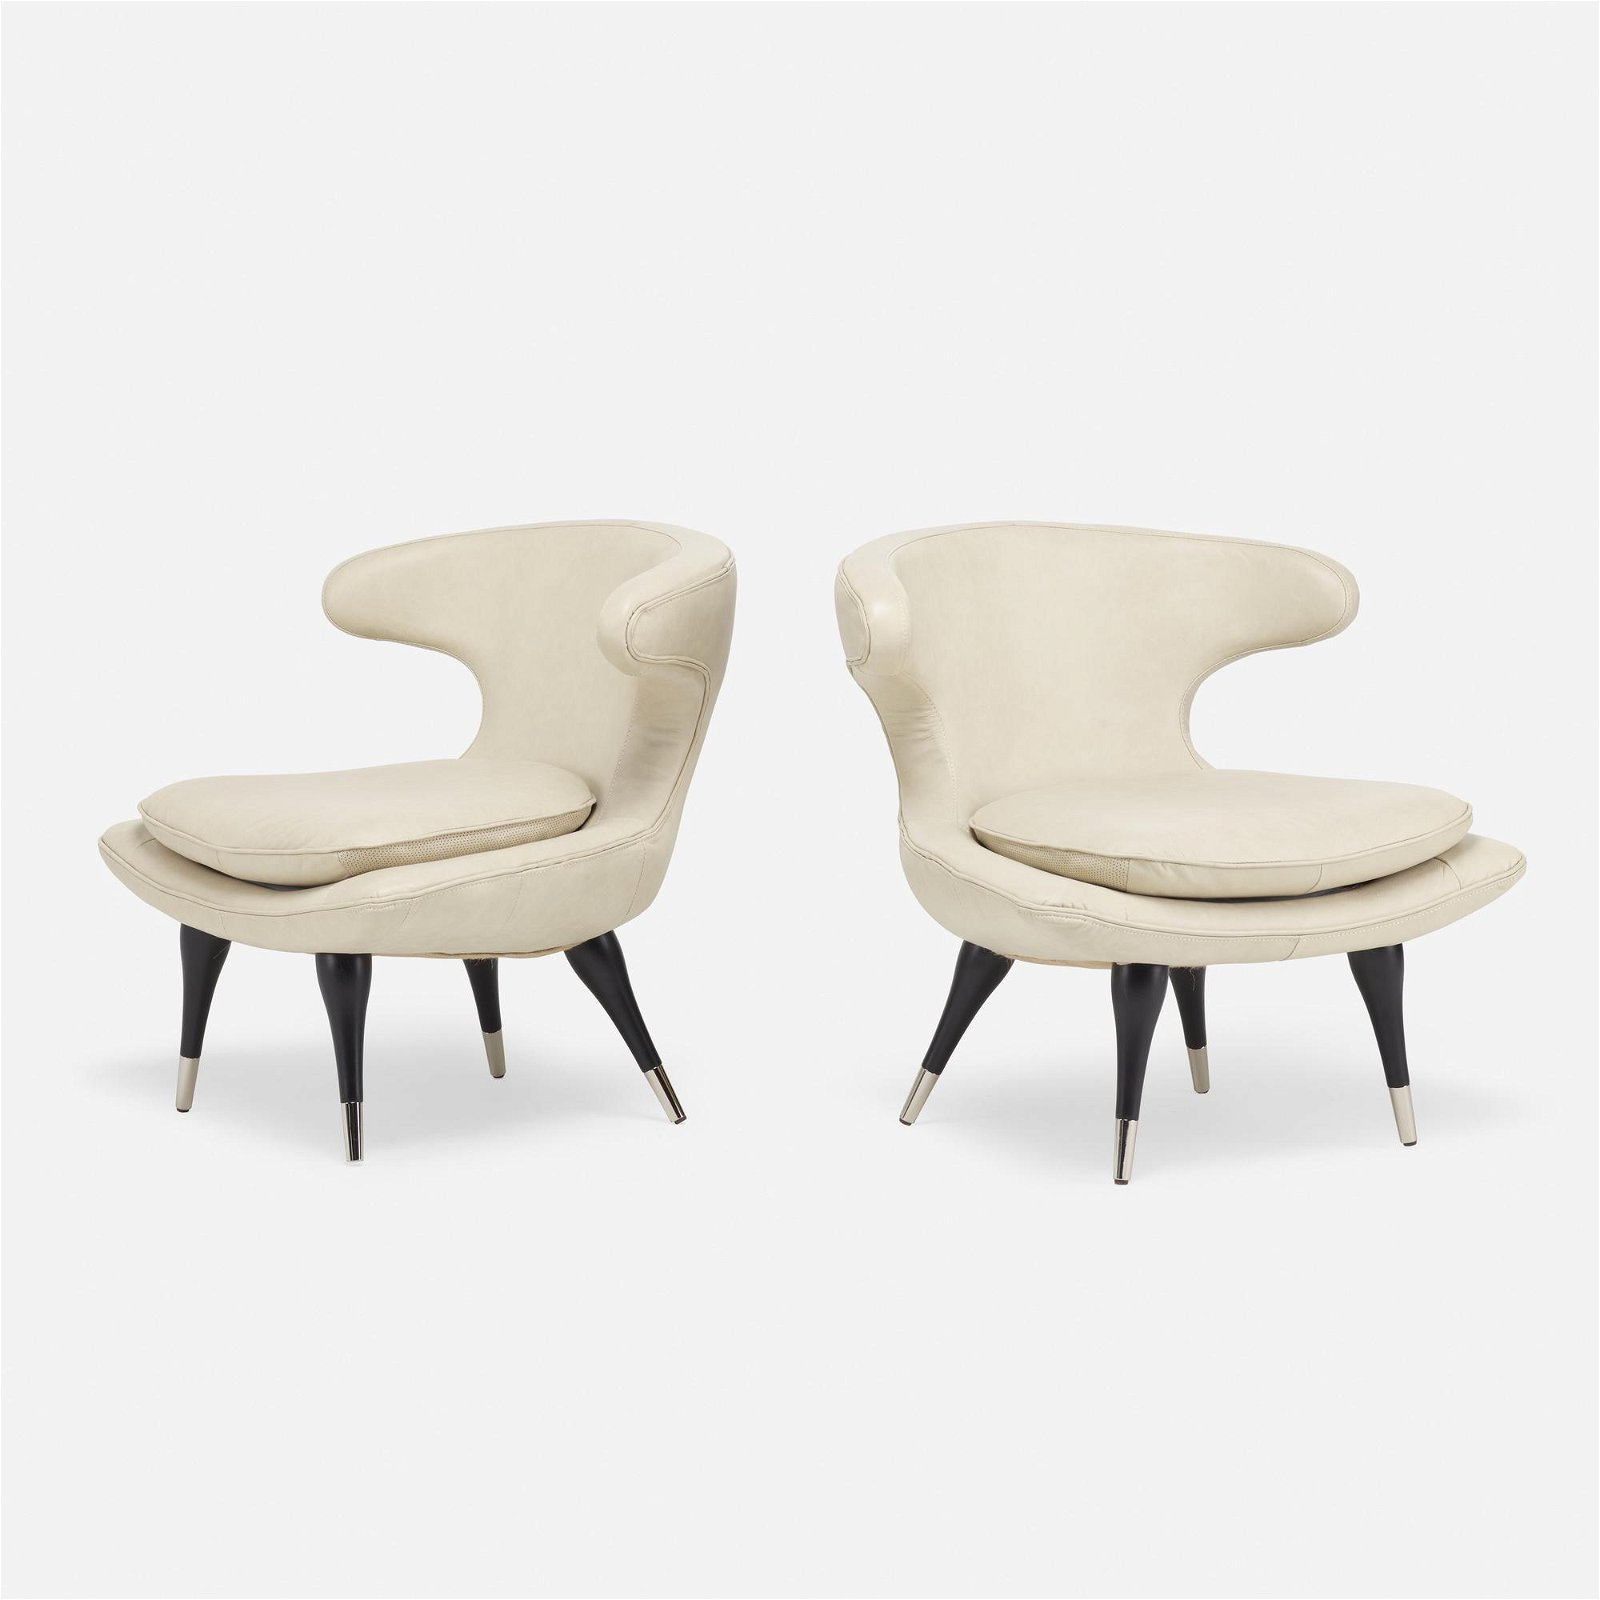 Mid-Century Modern, lounge chairs, pair